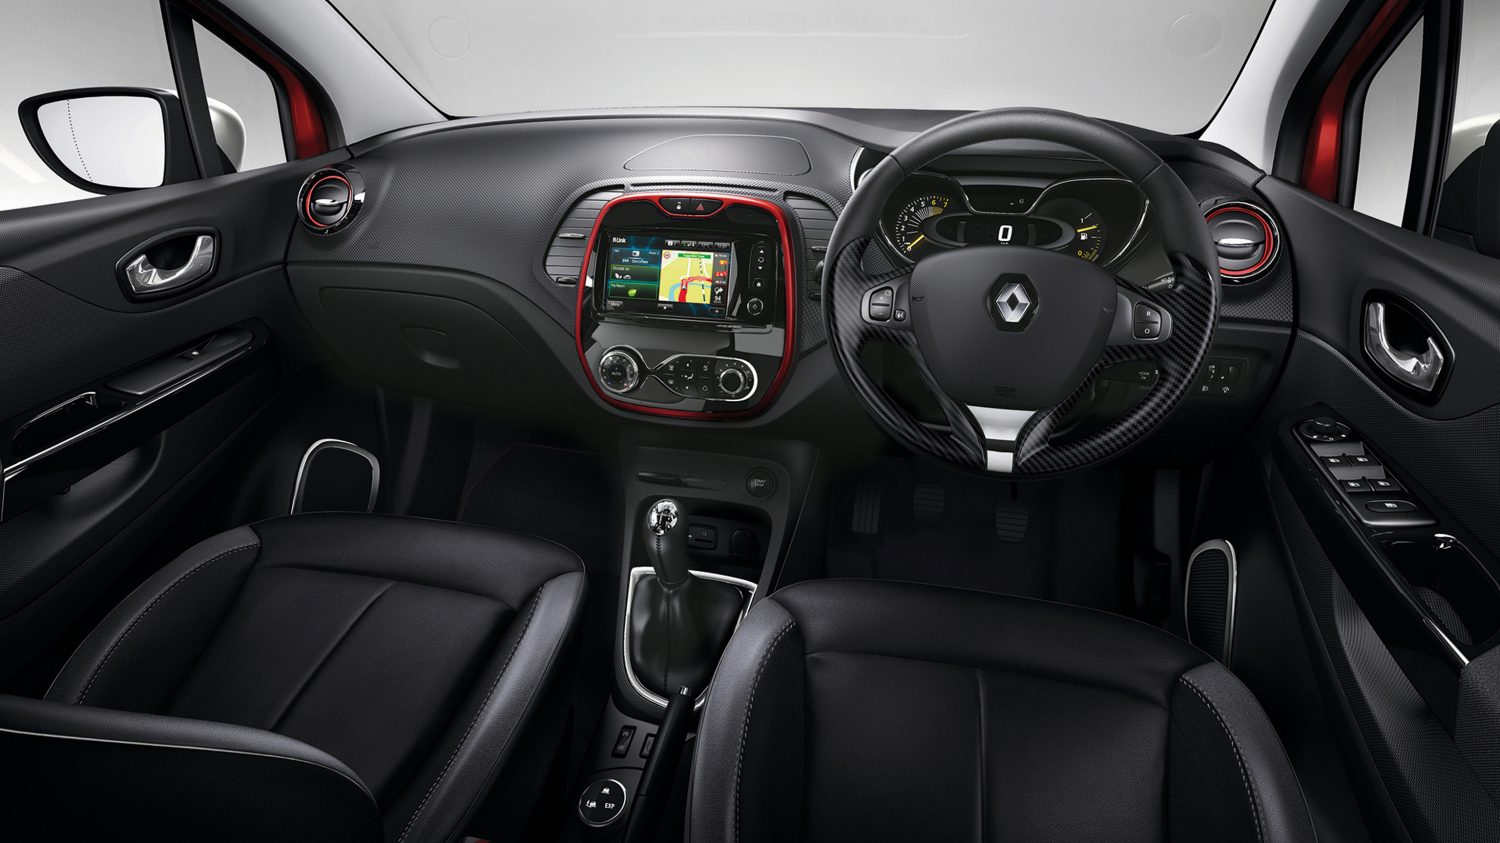 The era of crossovers renault captur carbay for Interior renault captur